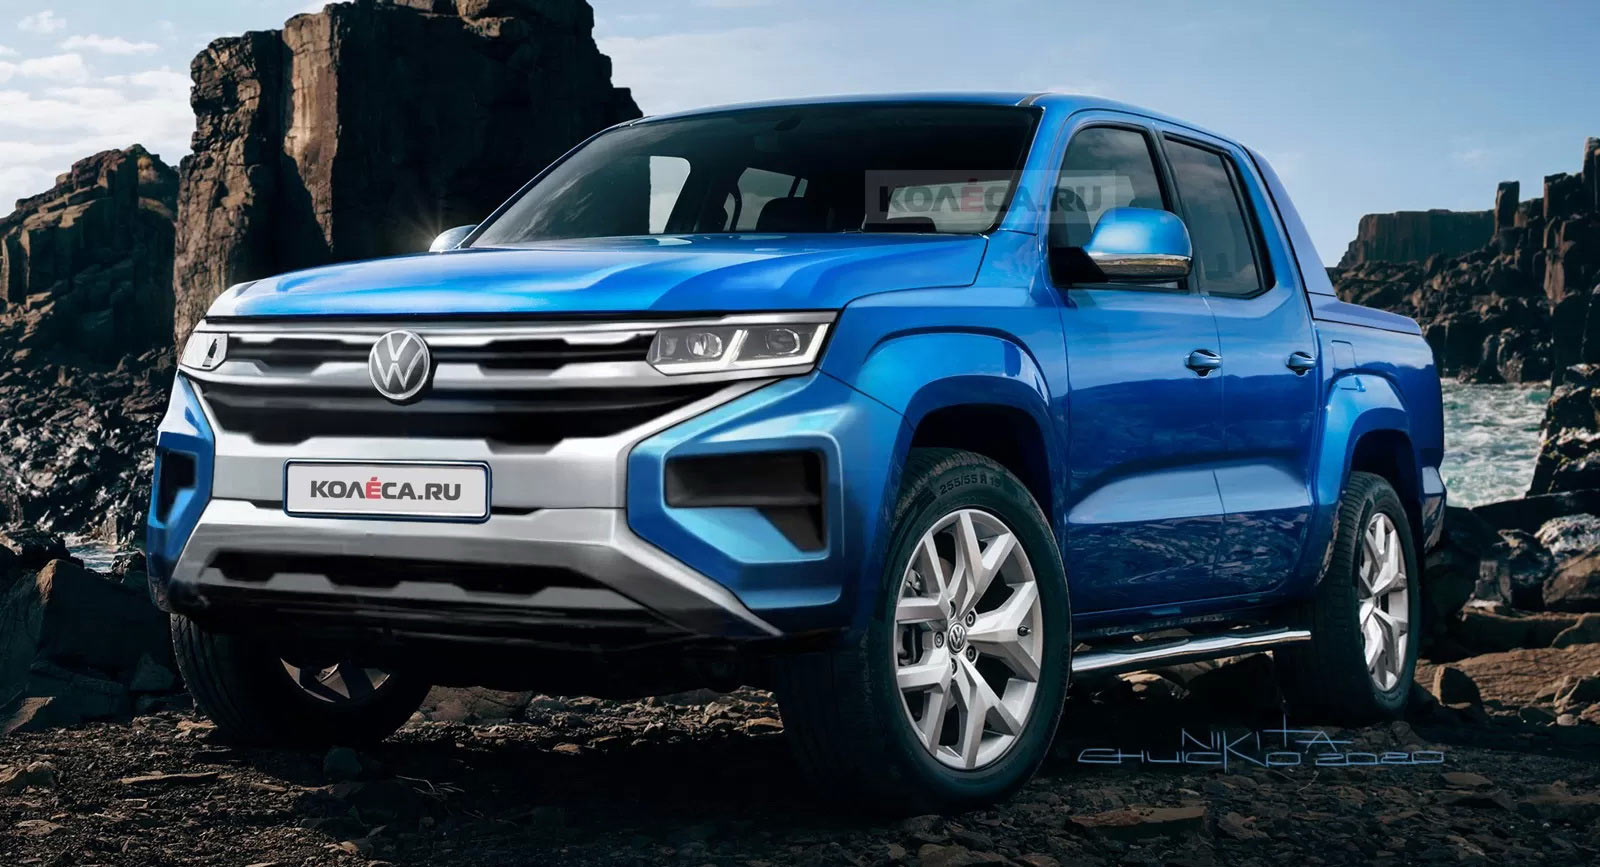 This Should Be It: 3 VW Amarok Rendered Based On Official